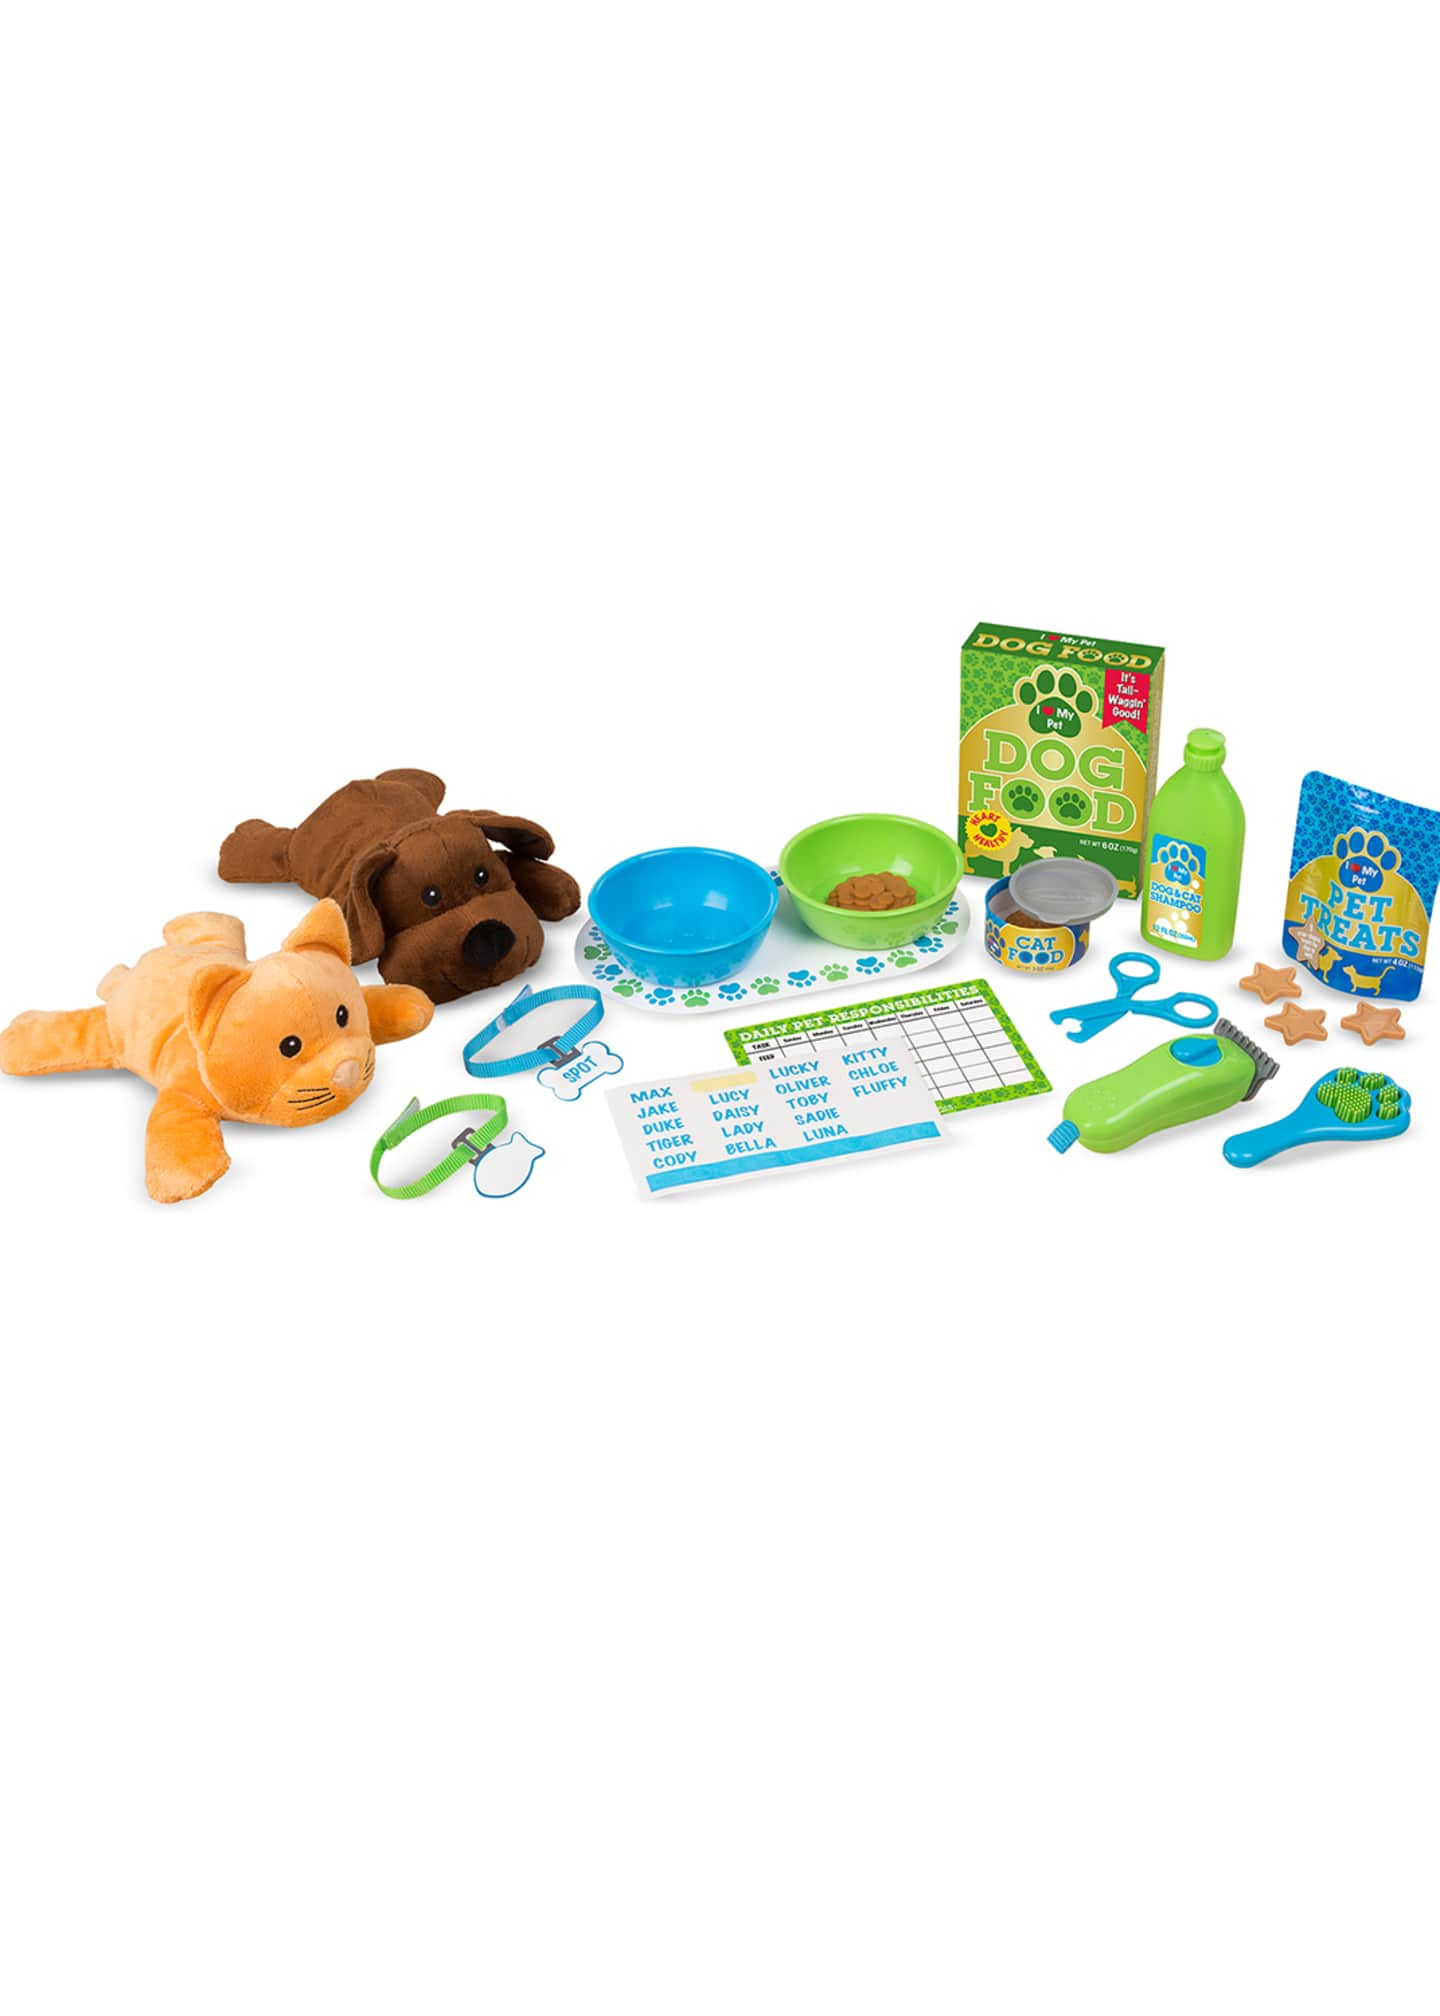 Image 1 of 3: Feeding & Grooming Pet Care Play Set